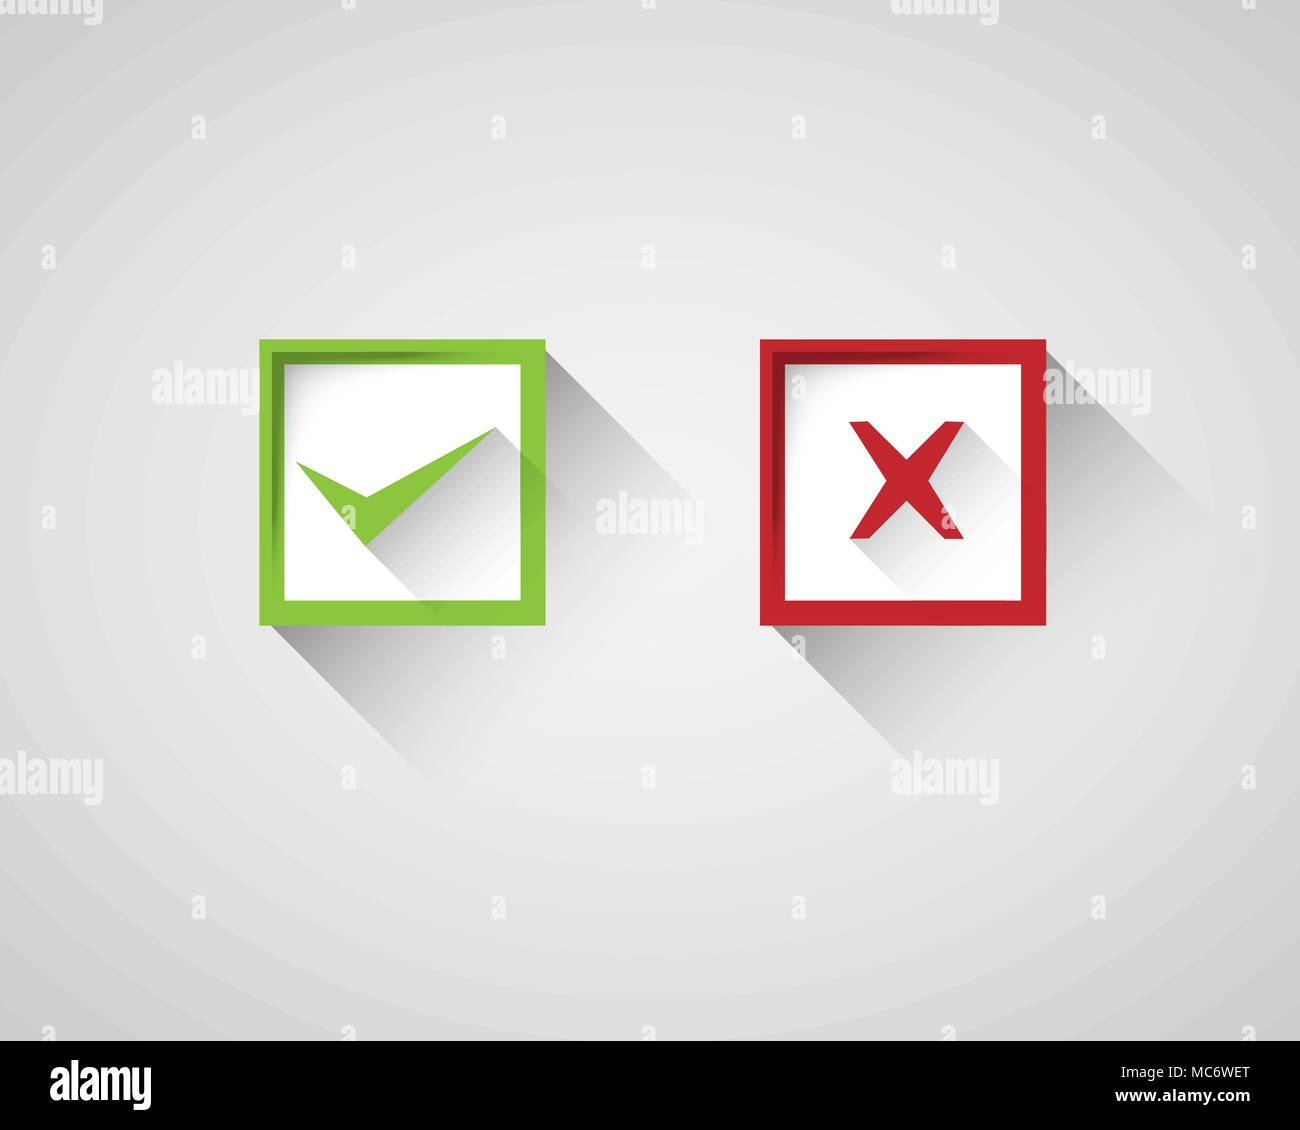 Right Wrong Square Sign Symbol Set Stock Vector Art Illustration